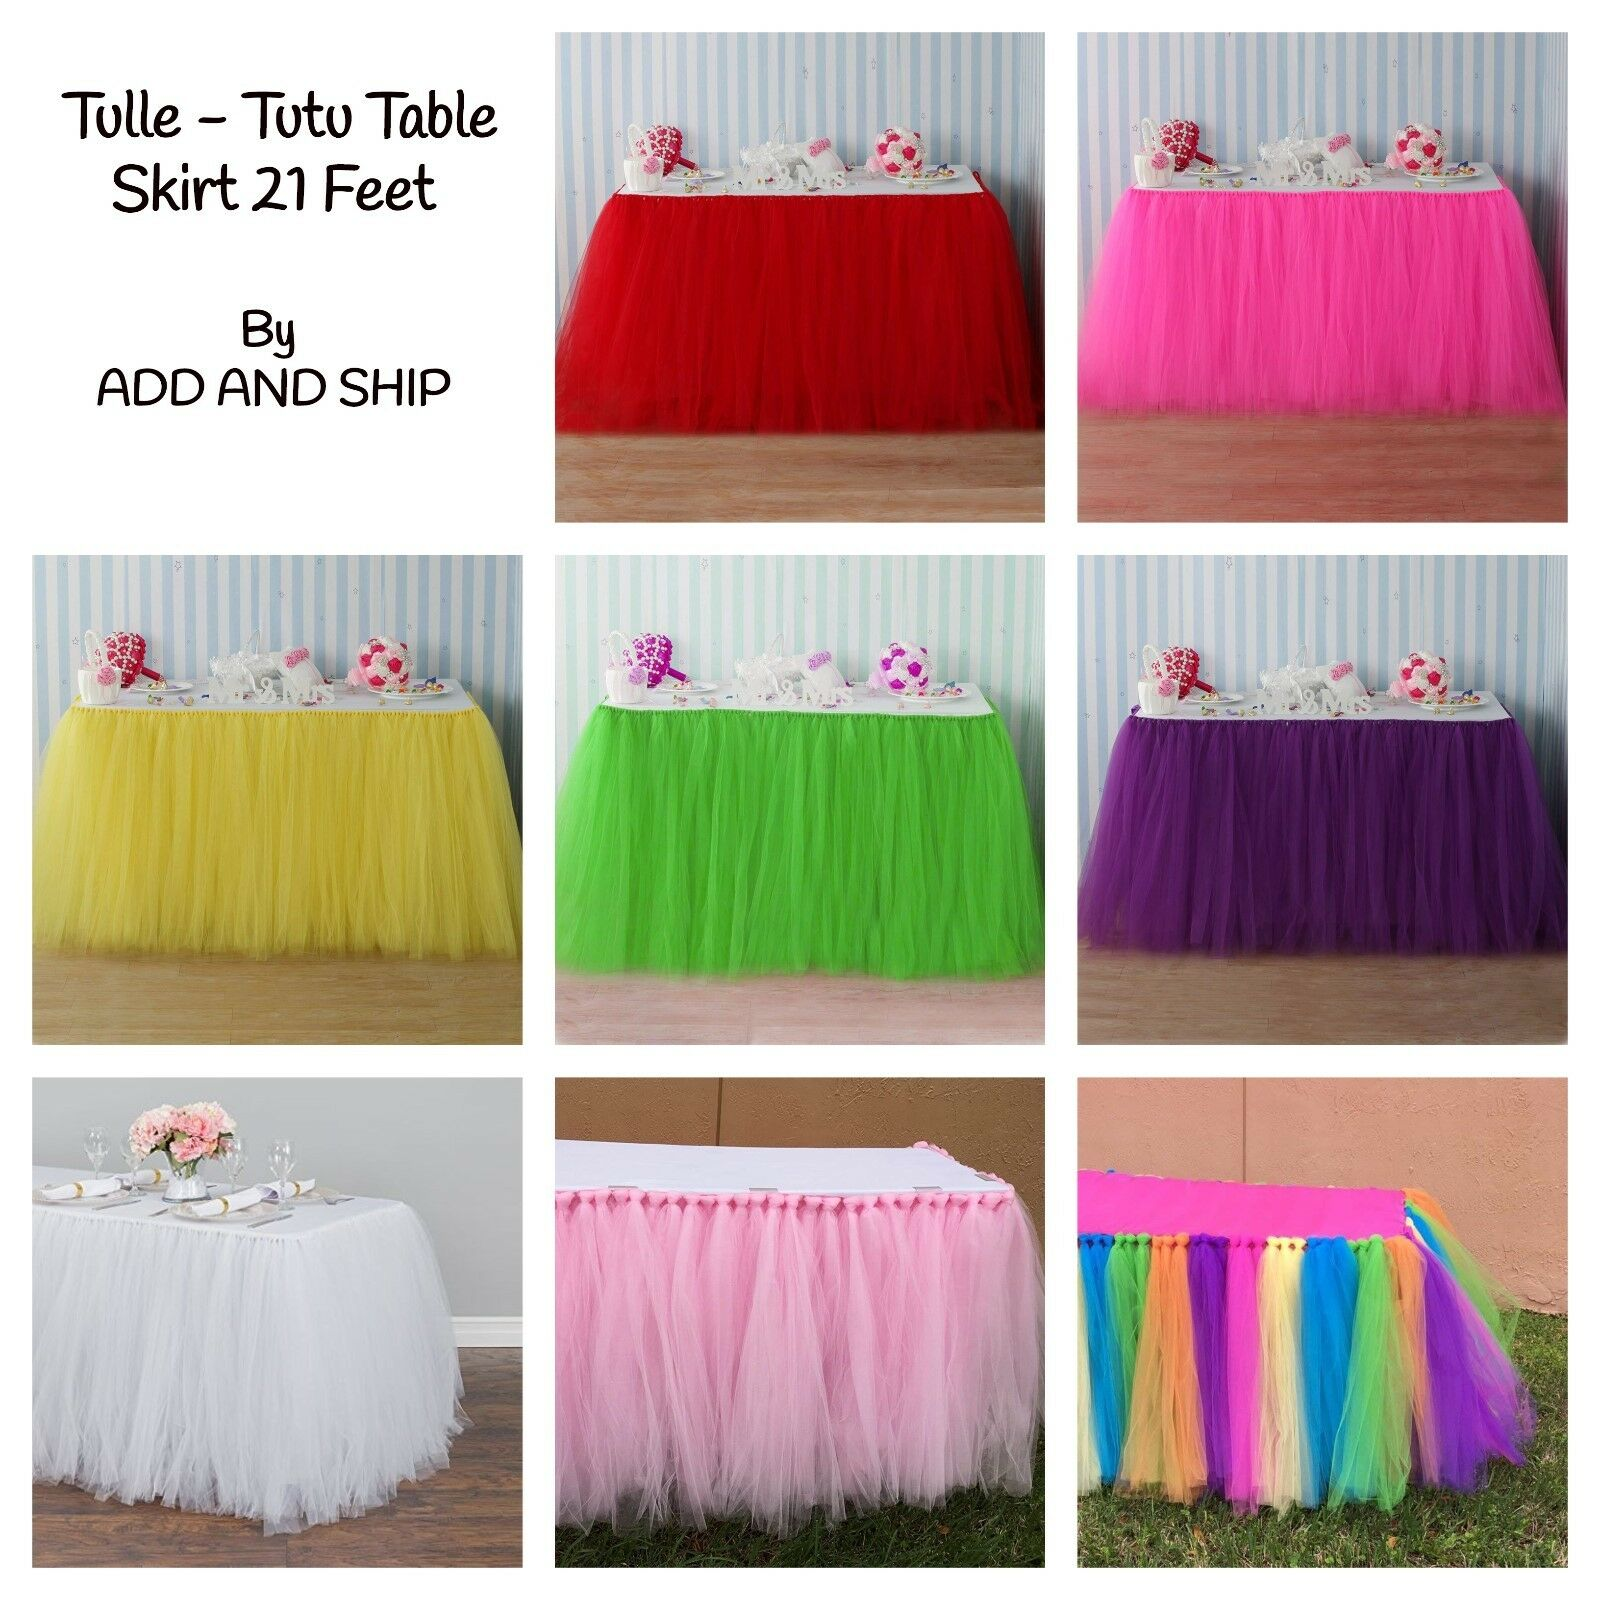 ADD AND SHIP Tulle Tutu Table Skirt 21 Feet for Wedding, Birthday, Baby Shower